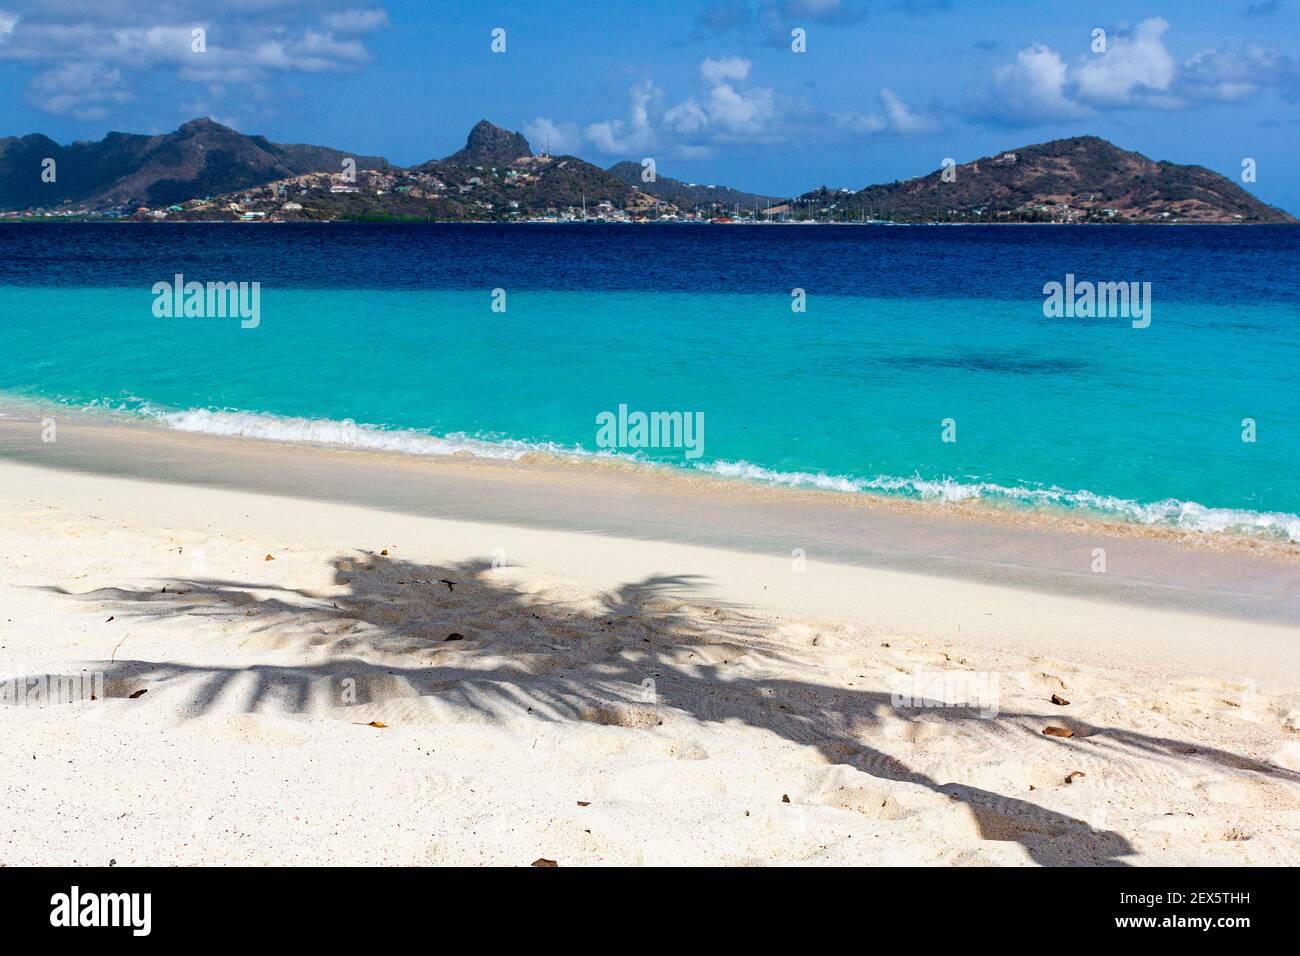 Palm Tree Shadow on a Caribbean Beach with Turquoise Caribbean ocean and Union island:  Casuarina Beach, Palm Island, Saint Vincent and the Grenadines Stock Photo